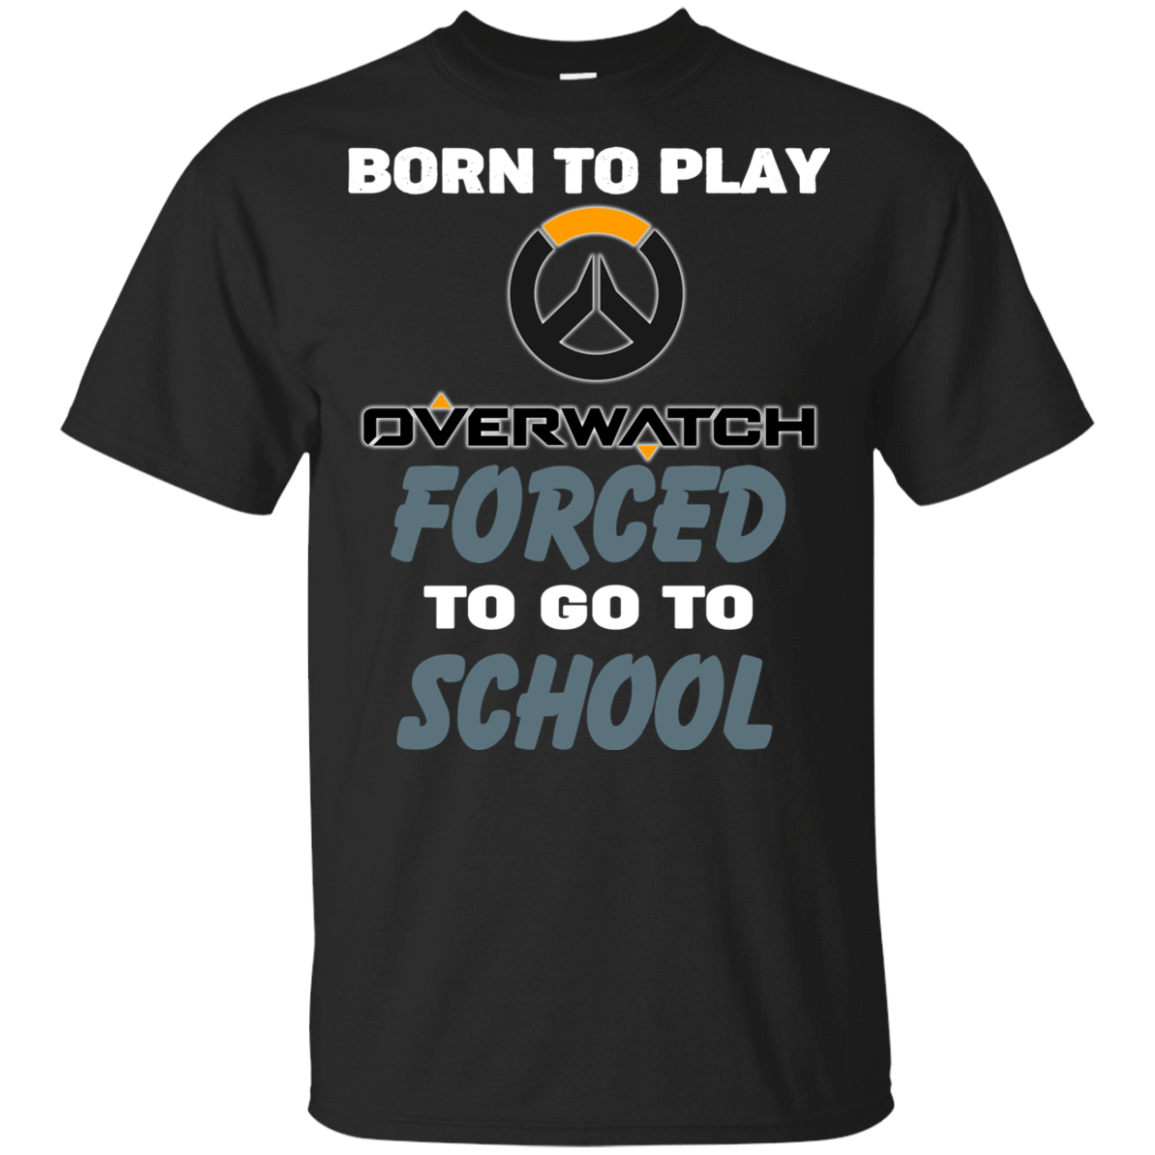 Born To Play Overwatch Forced To Go To School 55-313-74209658-10915 - Tee Ript